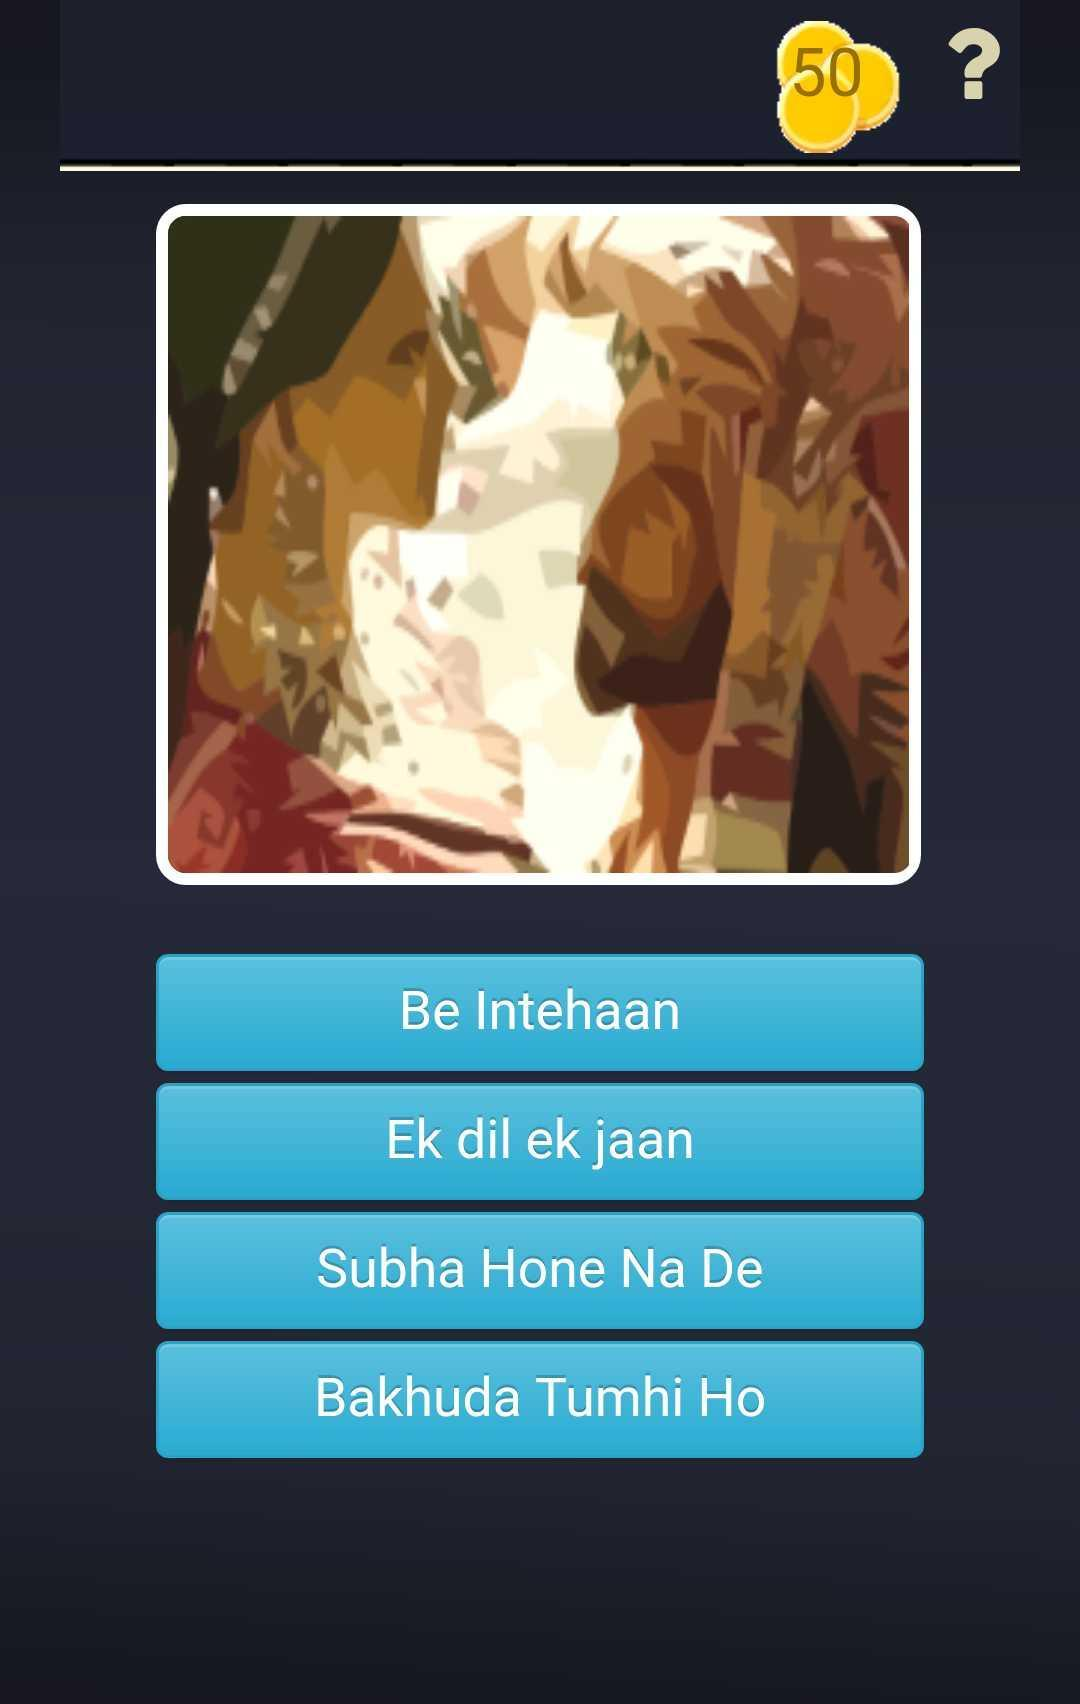 Bollywood Songs Guess For Android Apk Download Guess new hindi movie song names from emoticons and smileys   bhavinionline.com. bollywood songs guess for android apk